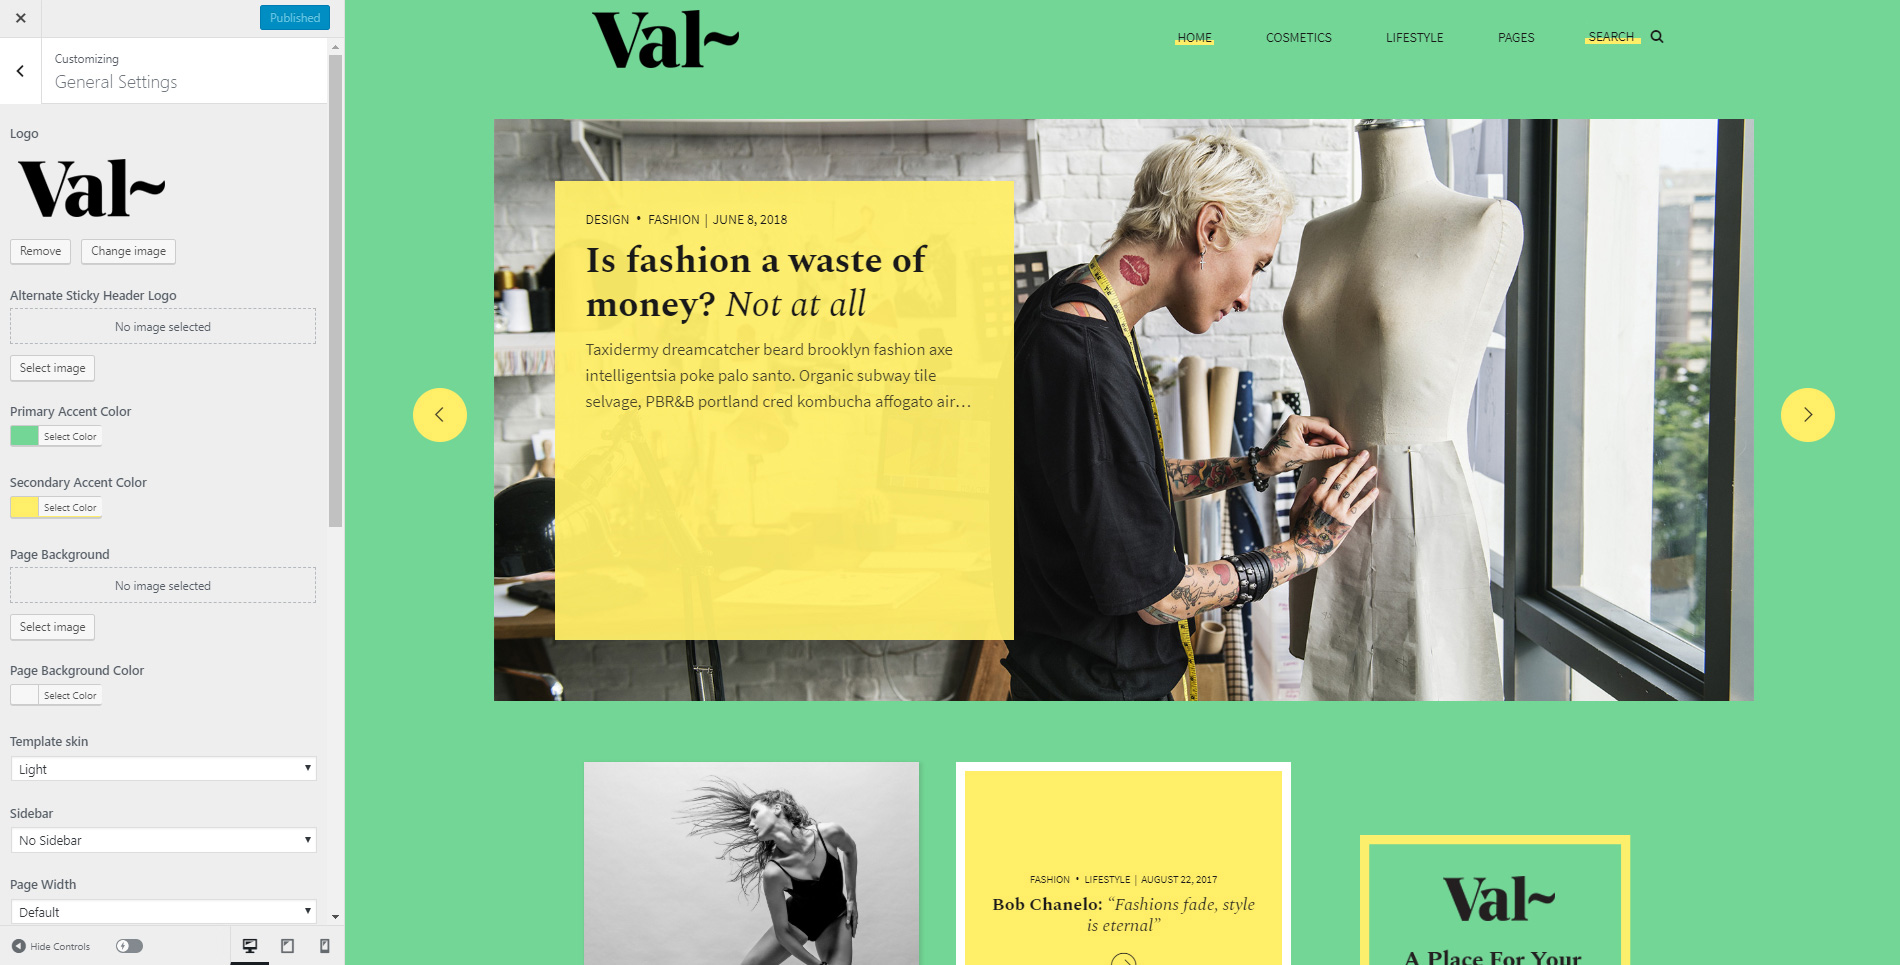 https://documentation.bold-themes.com/val/wp-content/uploads/sites/36/2018/12/val-customize-02.jpg